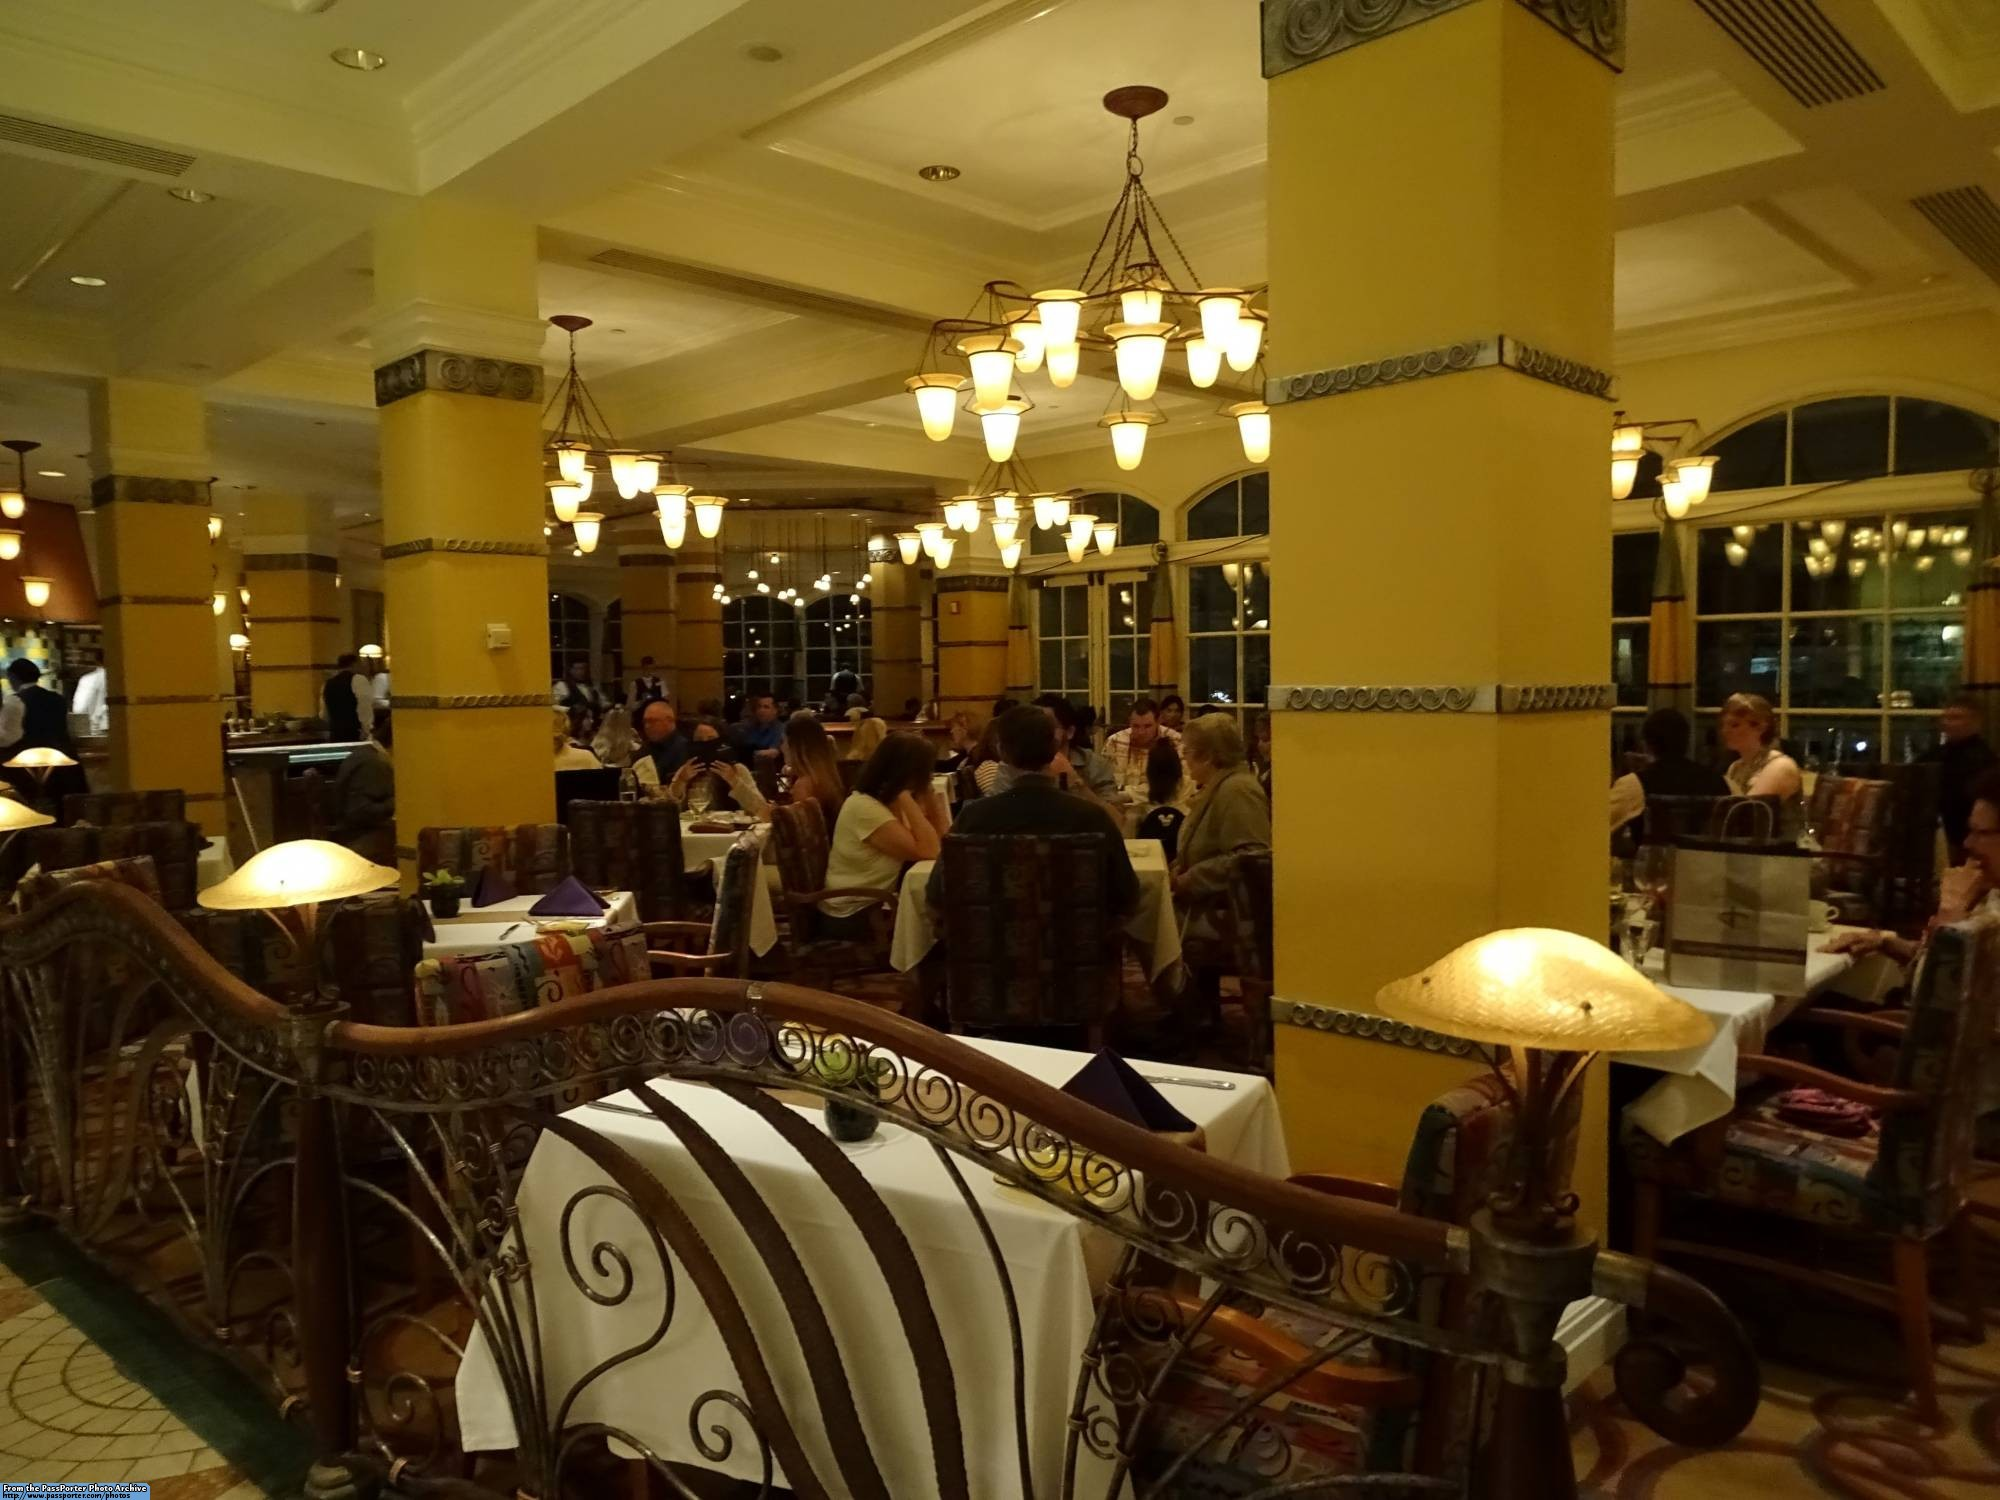 Enjoy a Signature meal at Citrico's at Disney's Grand Floridian | PassPorter.com